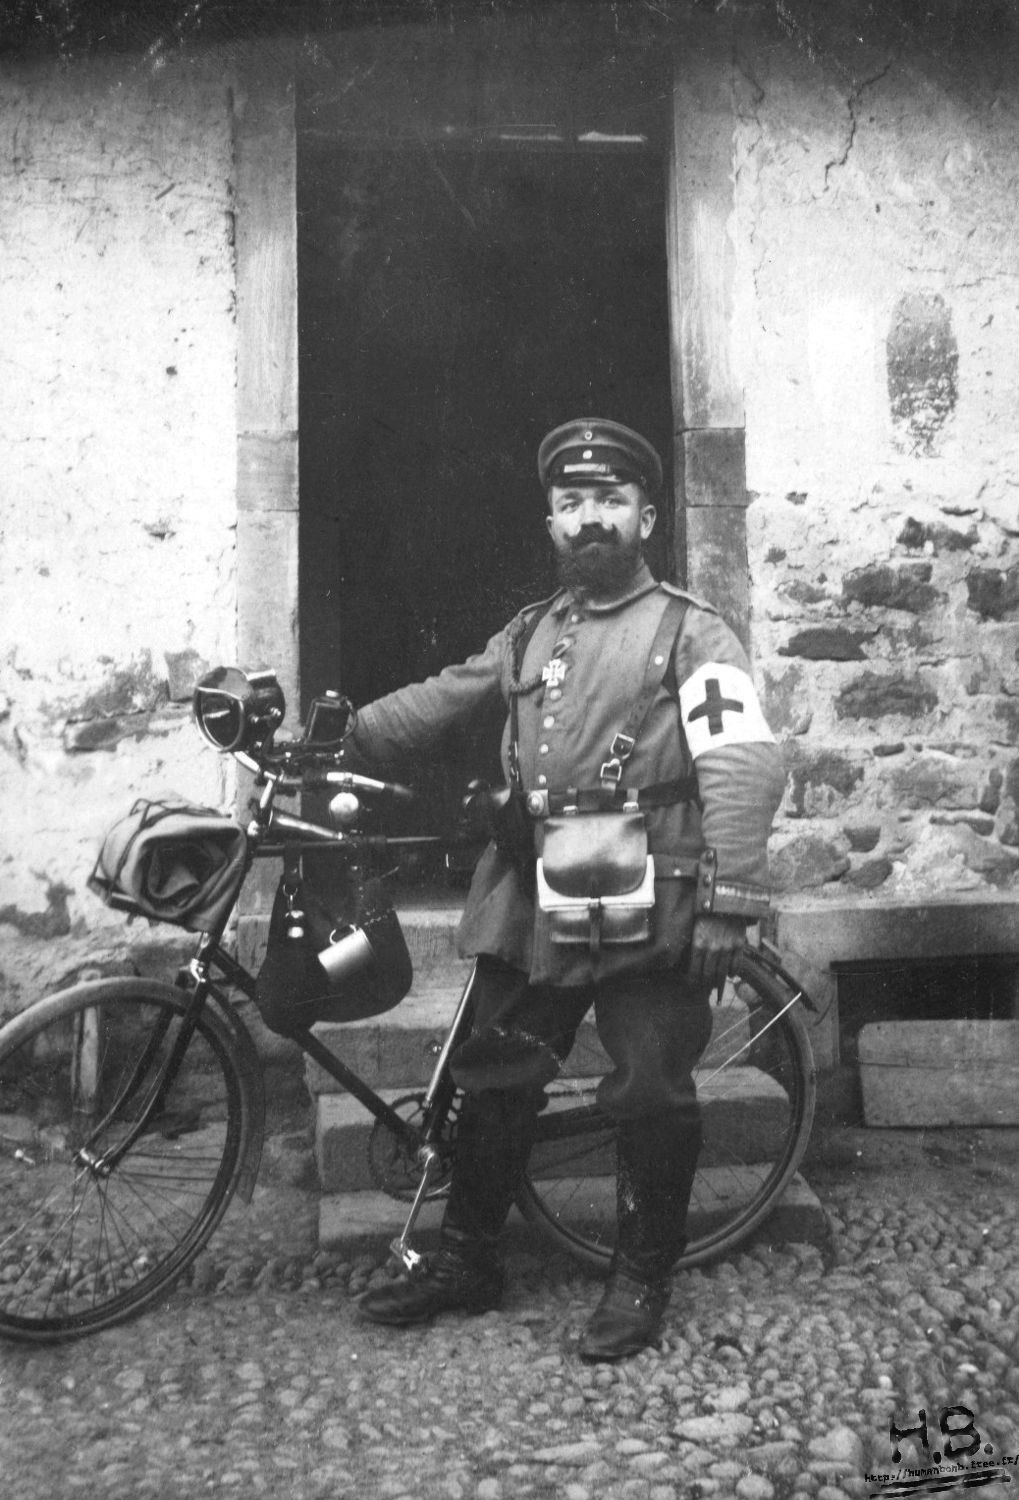 WW1 medic with his bicycle. http://humanbonb.free.fr/Phototheque/images/phototheque/normal/164275305488.jpg